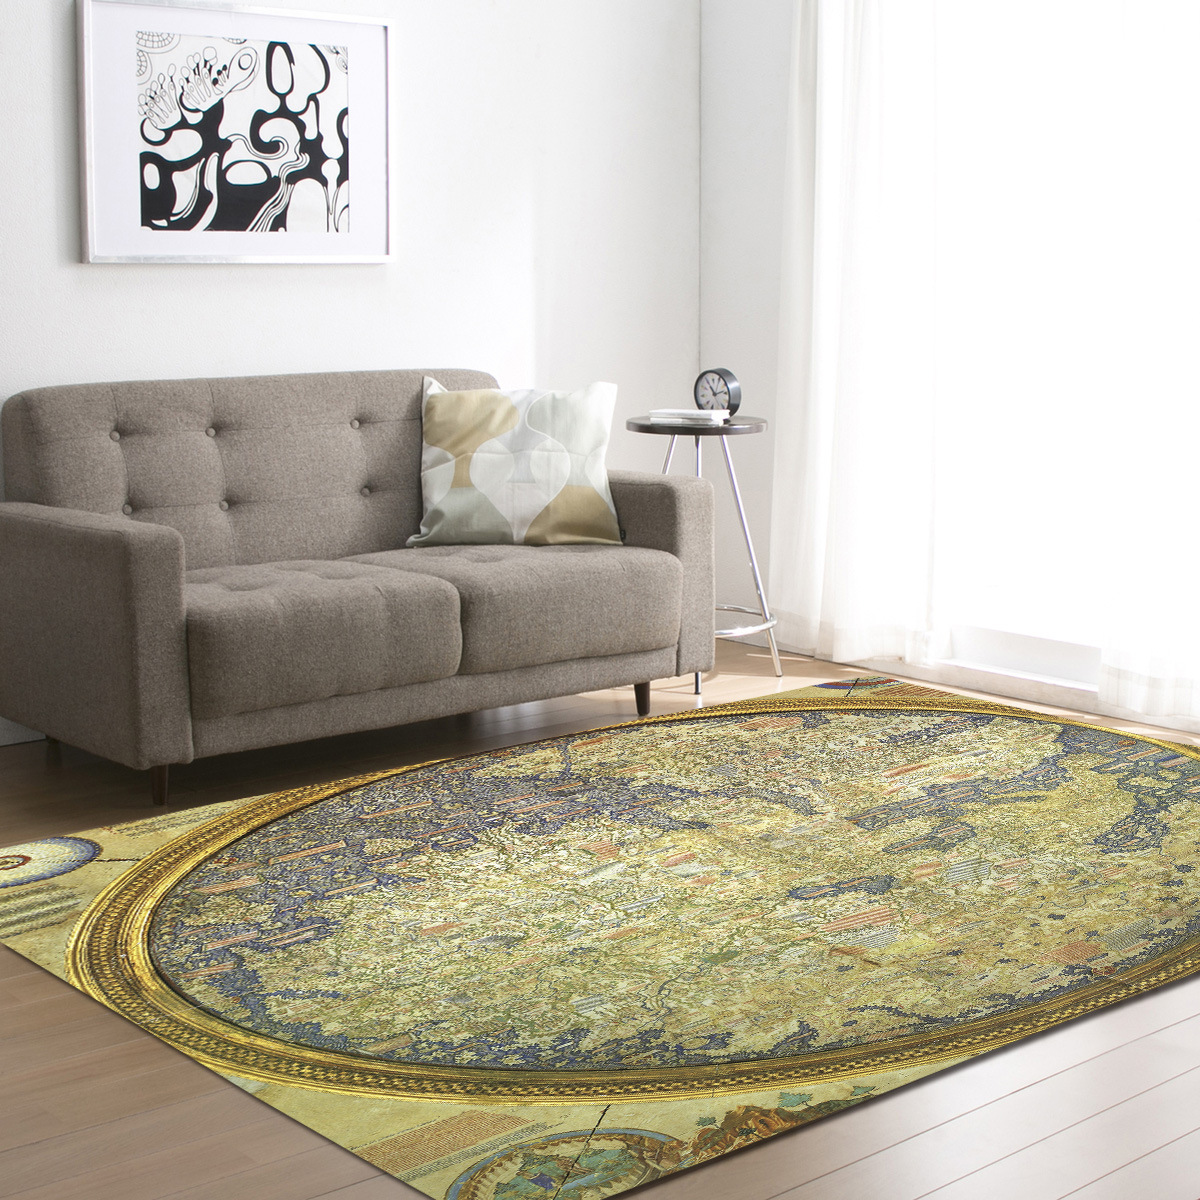 World Map Floor Mat Carpets For Living Room Anti-slip Office Chair Rugs Bedroom Carpets Kids Study Room Bedside Area Rug